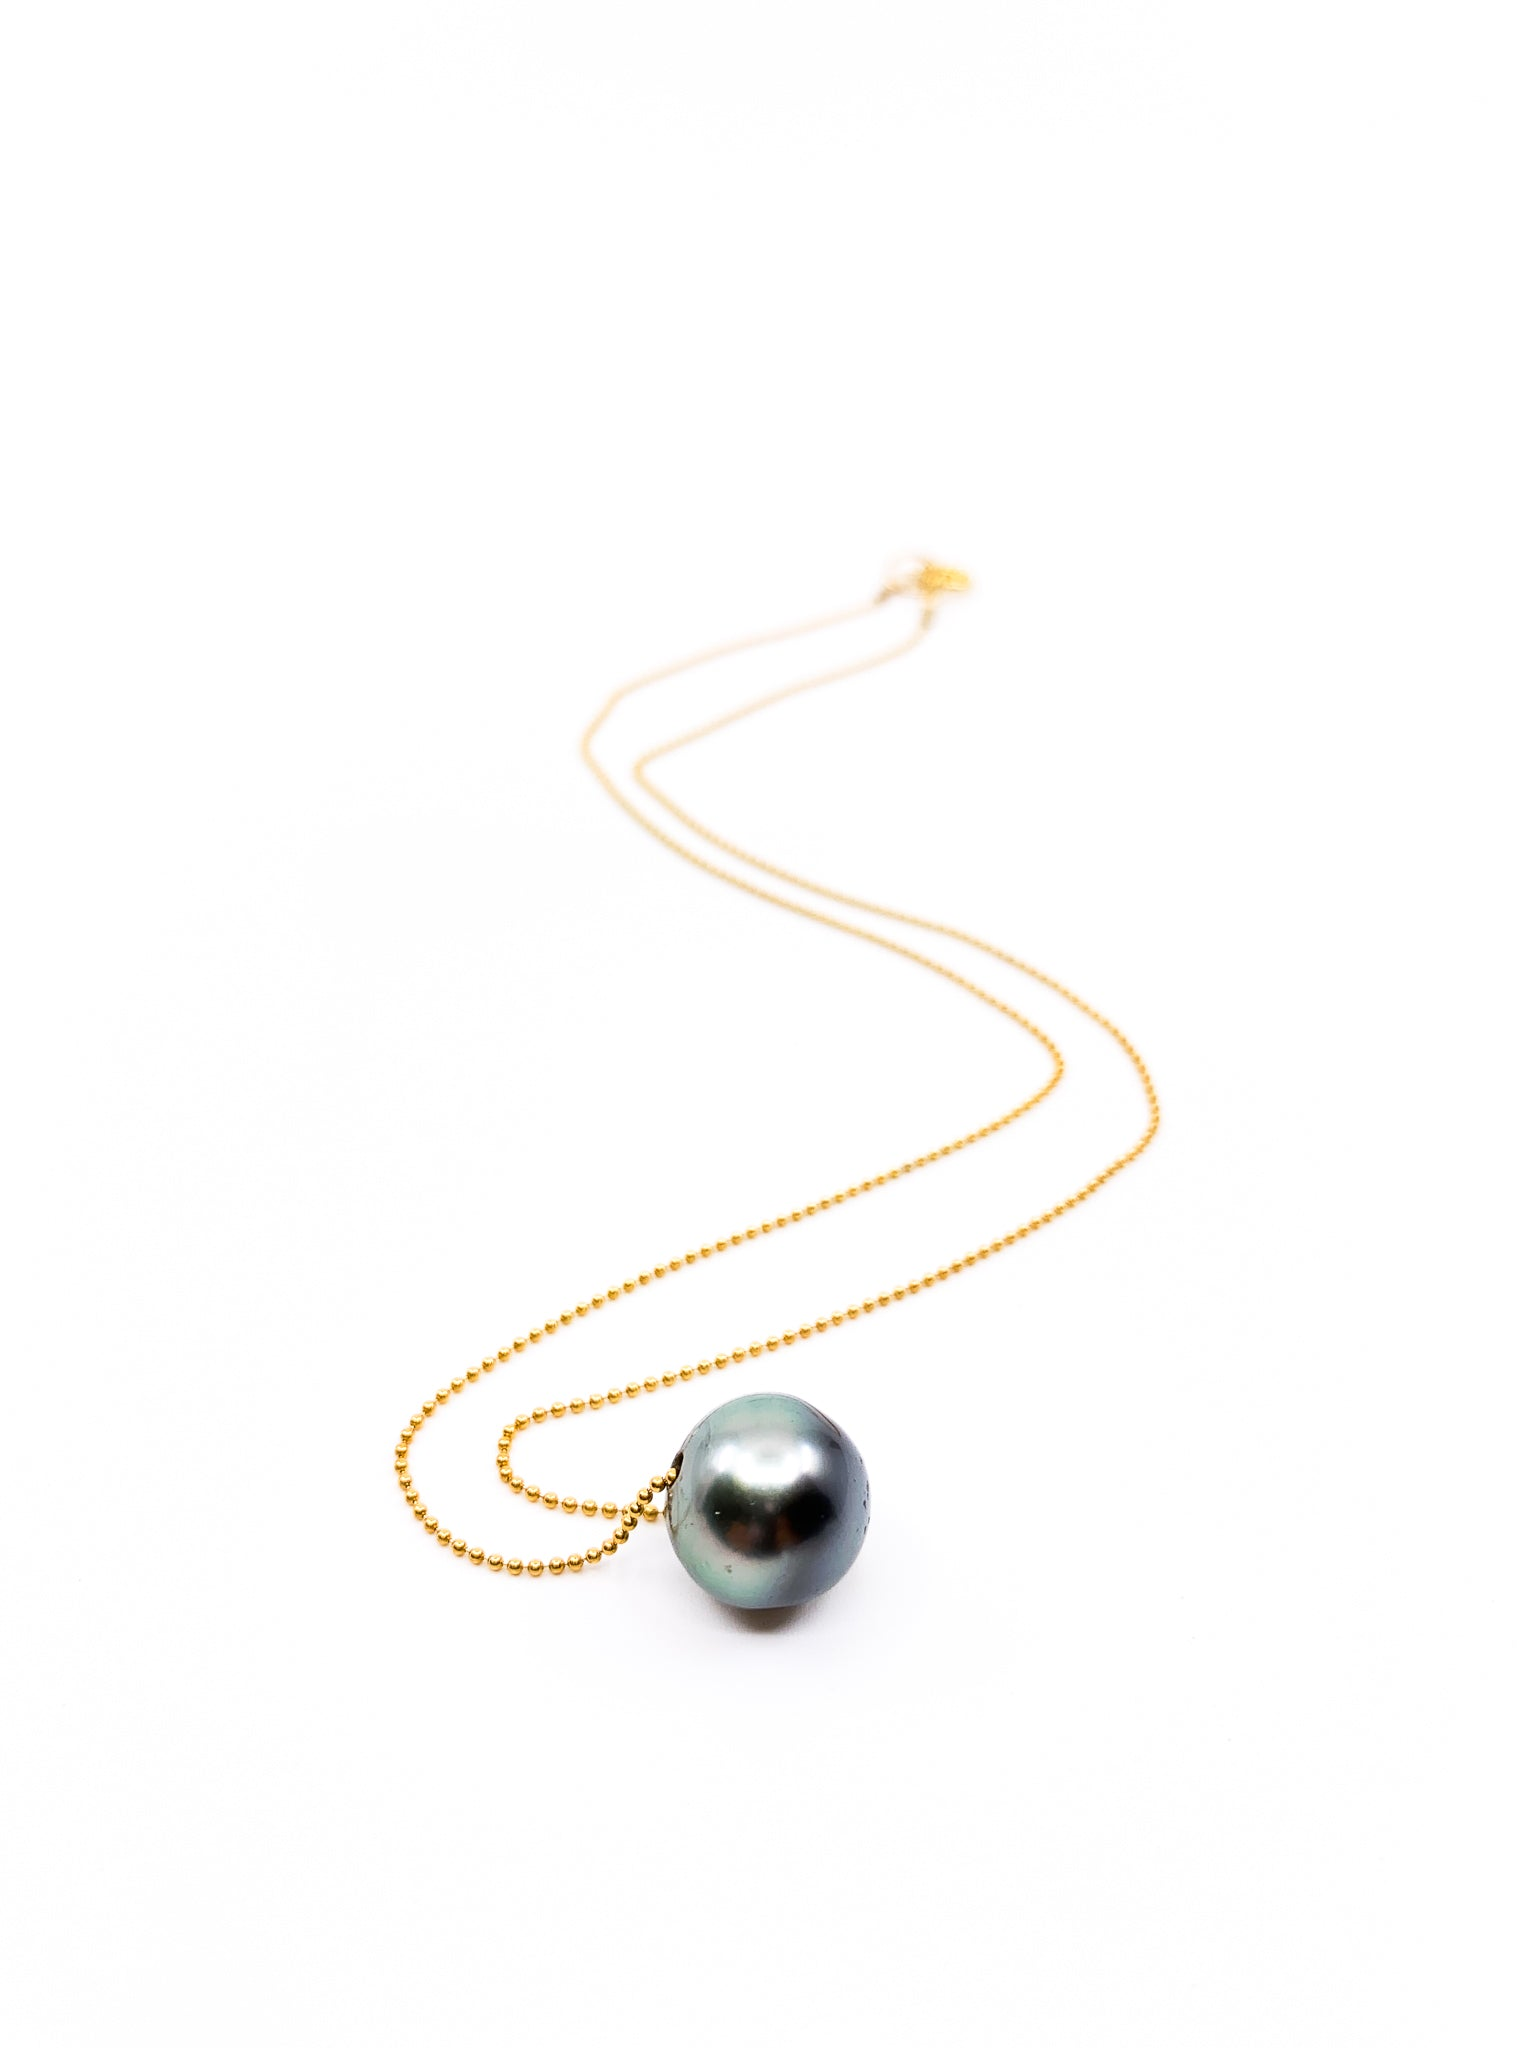 Tahitian pearl with delicate gold chain necklace by eve black jewelry made in Hawaii